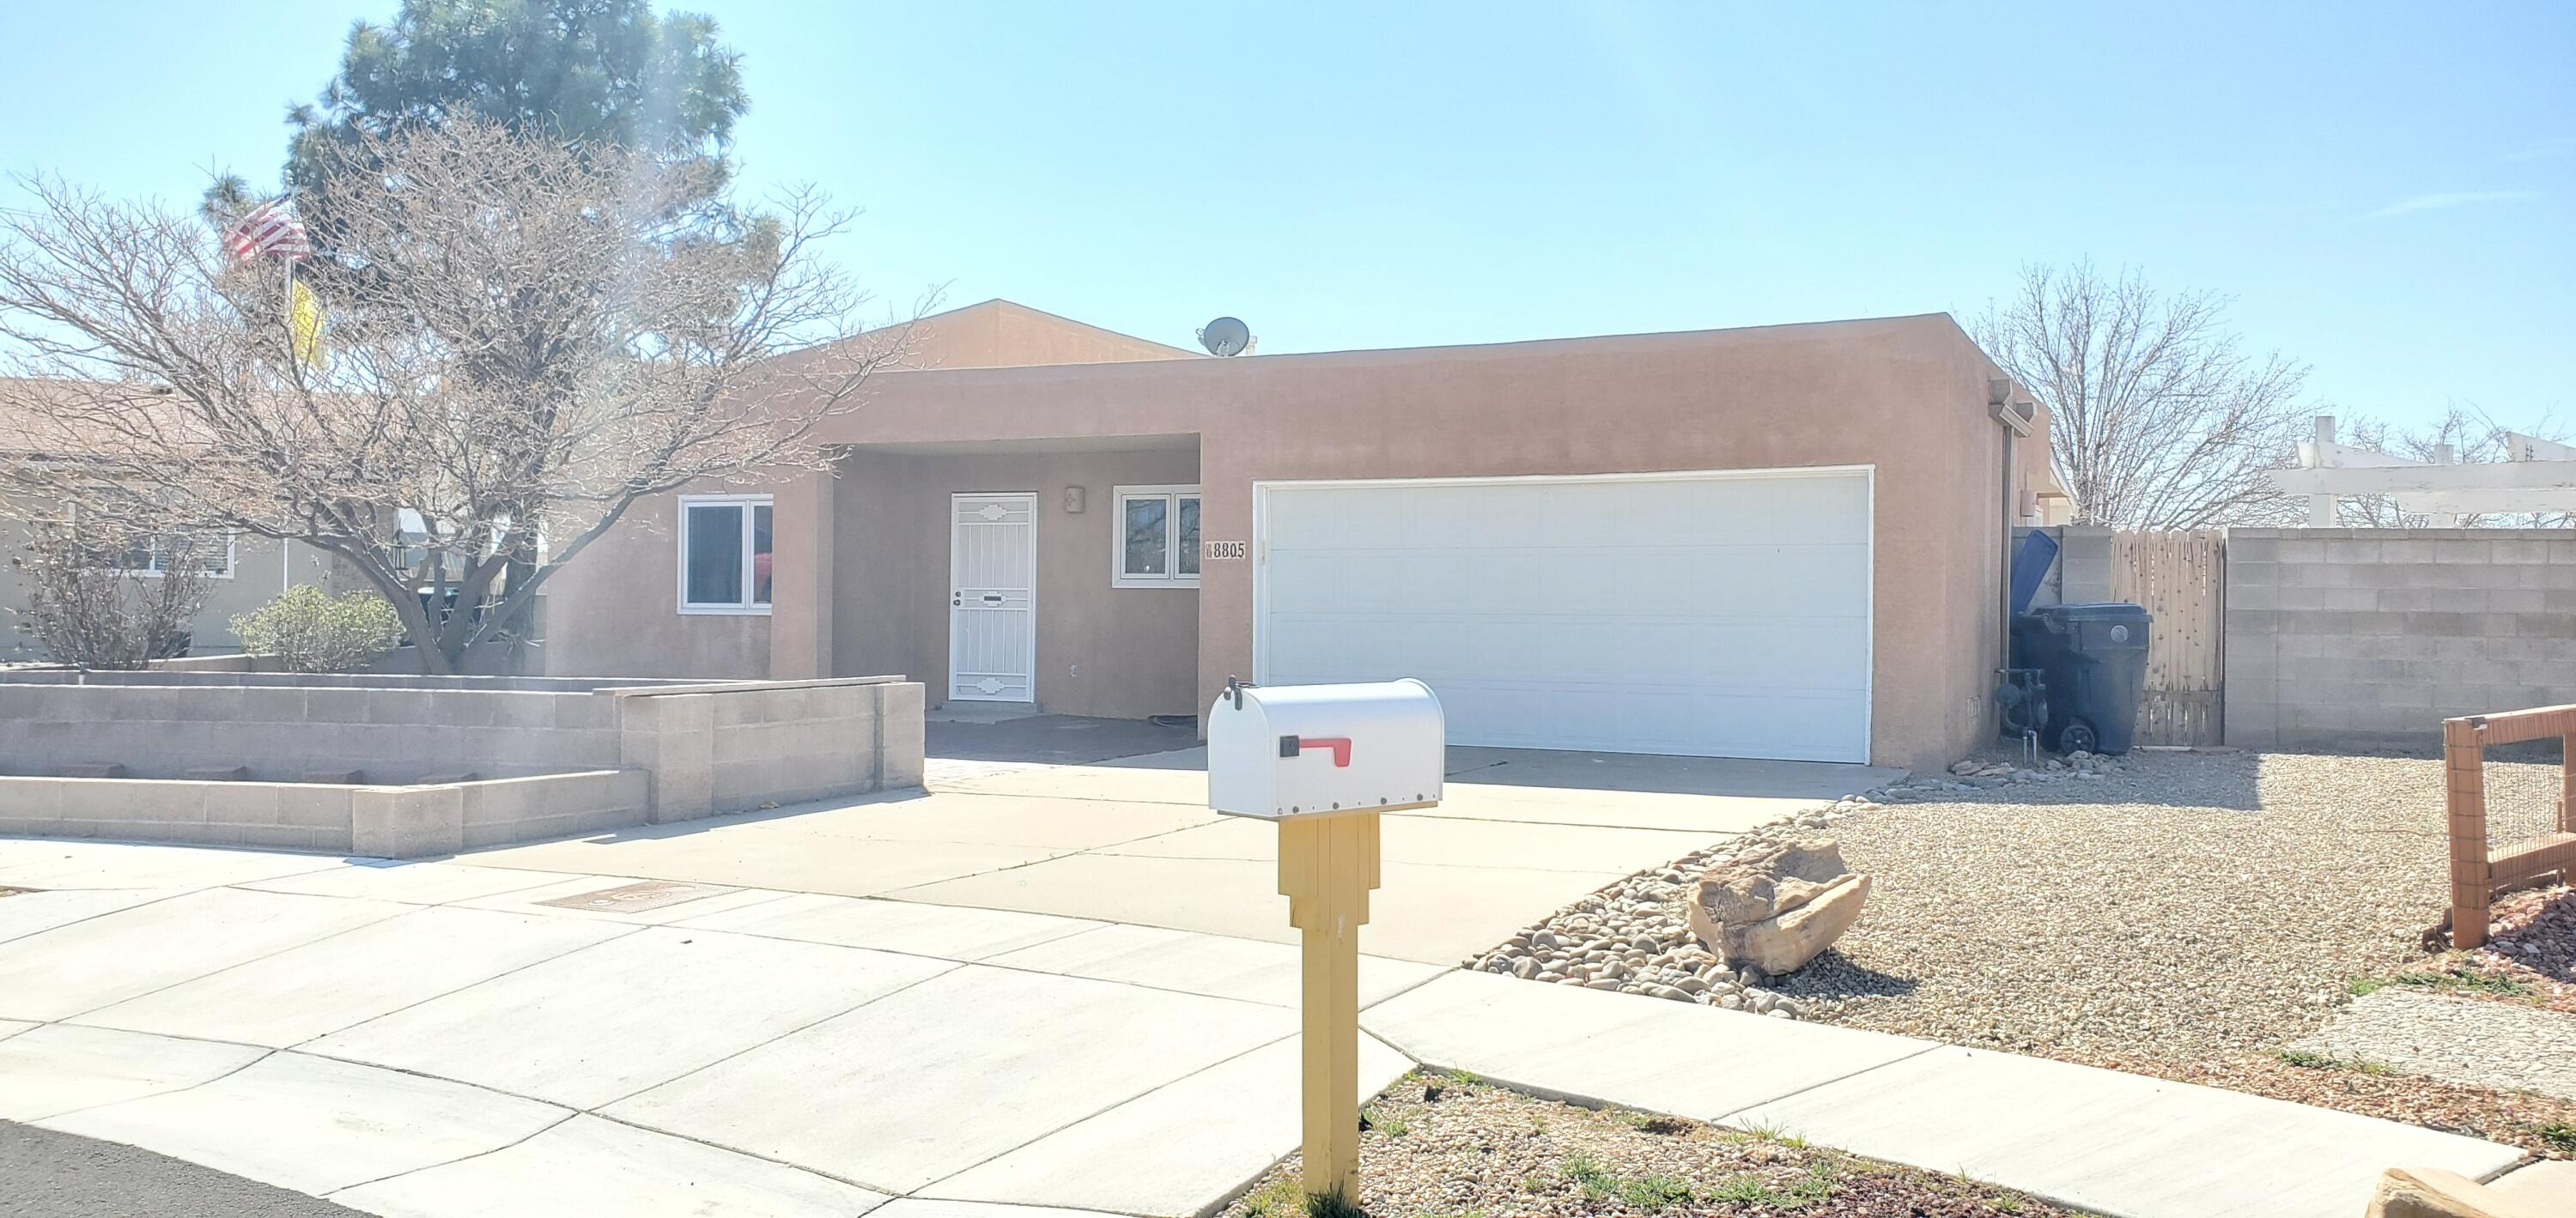 Great NE find! 4 bedroom in La Cueva HS Area with 2 car Garage. NEW TPO ROOF, New Refrigerated AC, New finishied Garage. Large Yard with Storage Shed, side yard parking available. Easy Access . Closest neighborhood to Balloon fiesta park!